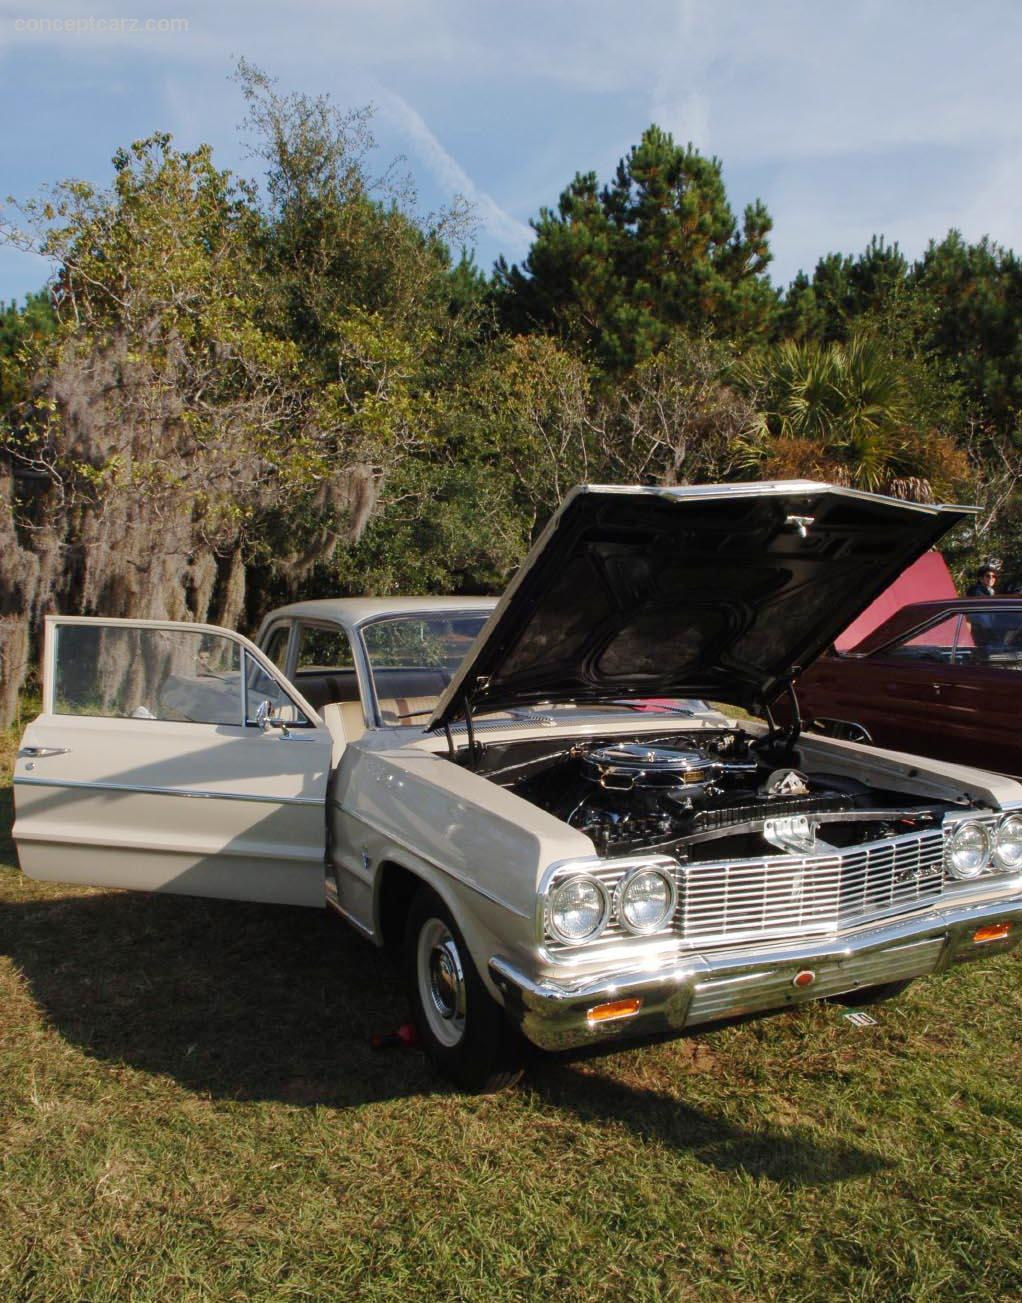 All Chevy chevy bel air 1964 : Auction Results and Sales Data for 1964 Chevrolet Bel Air Series